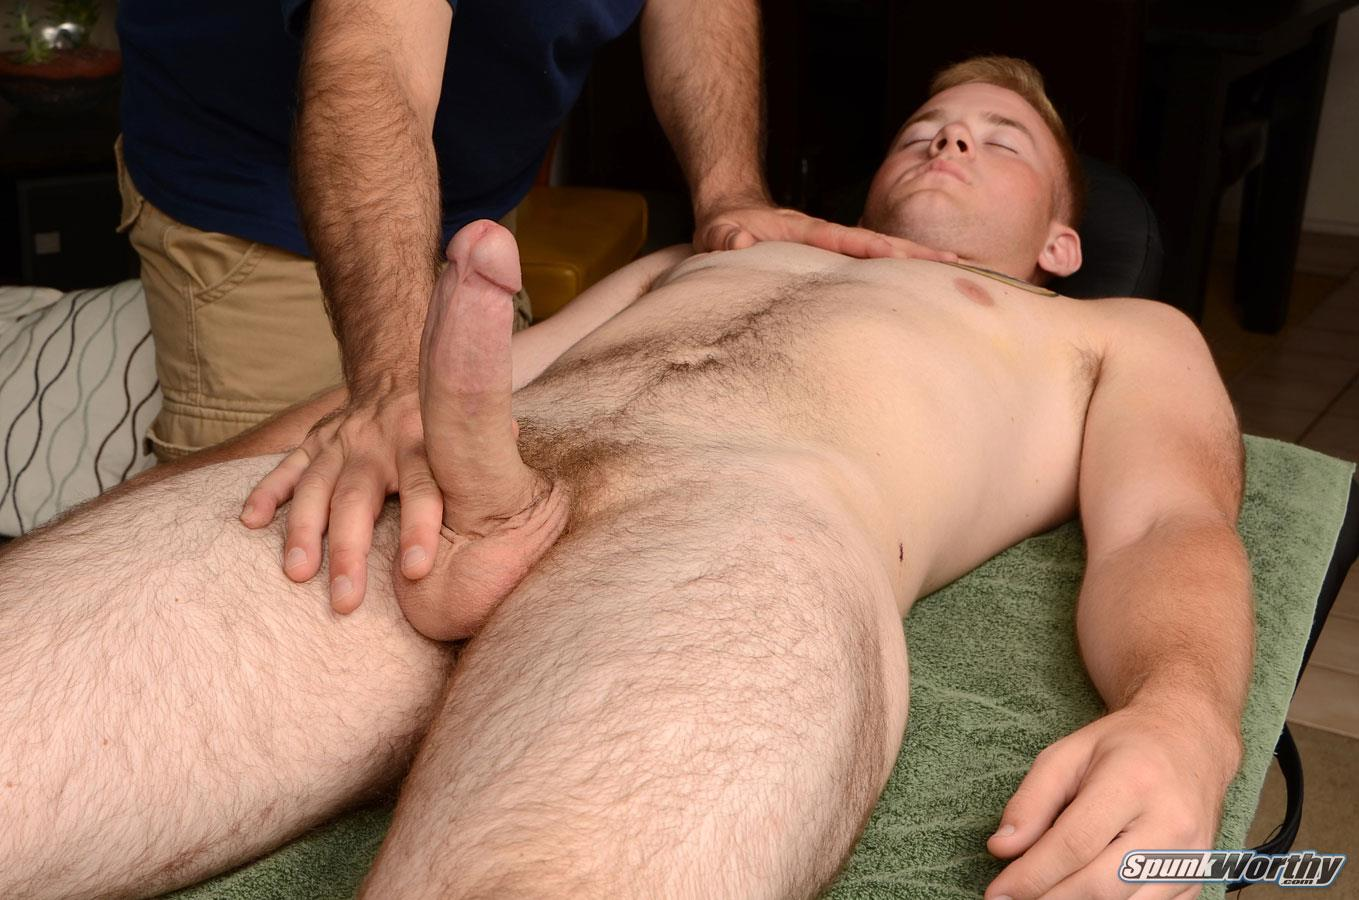 19 year old boy masturbation with cumshot 6